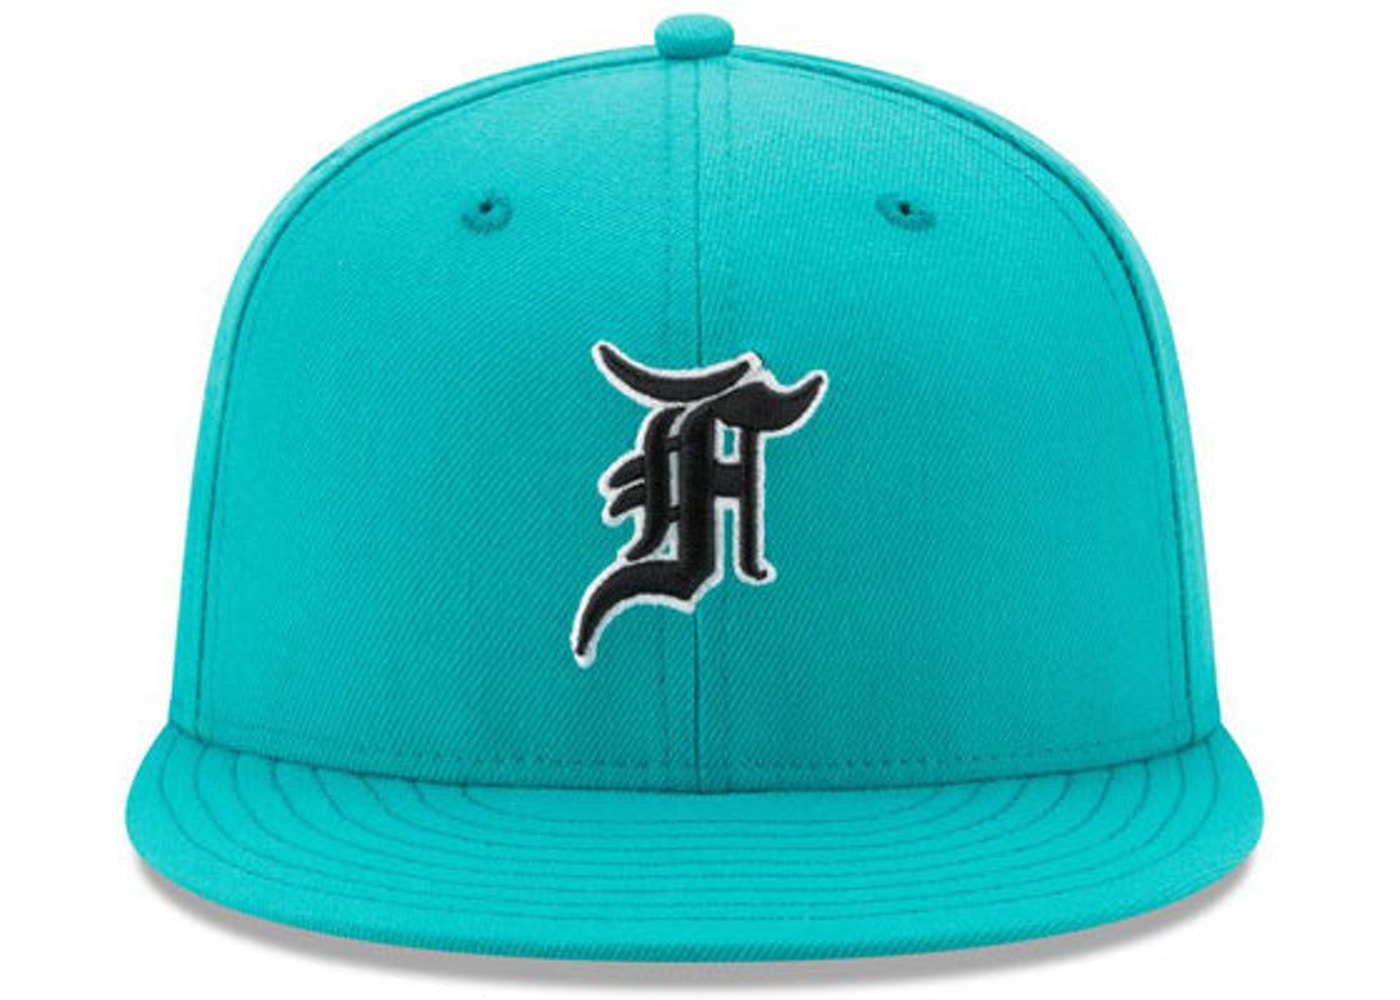 093f28e23 FEAR OF GOD All Star New Era Fitted Cap Hat Teal - Fifth Collection